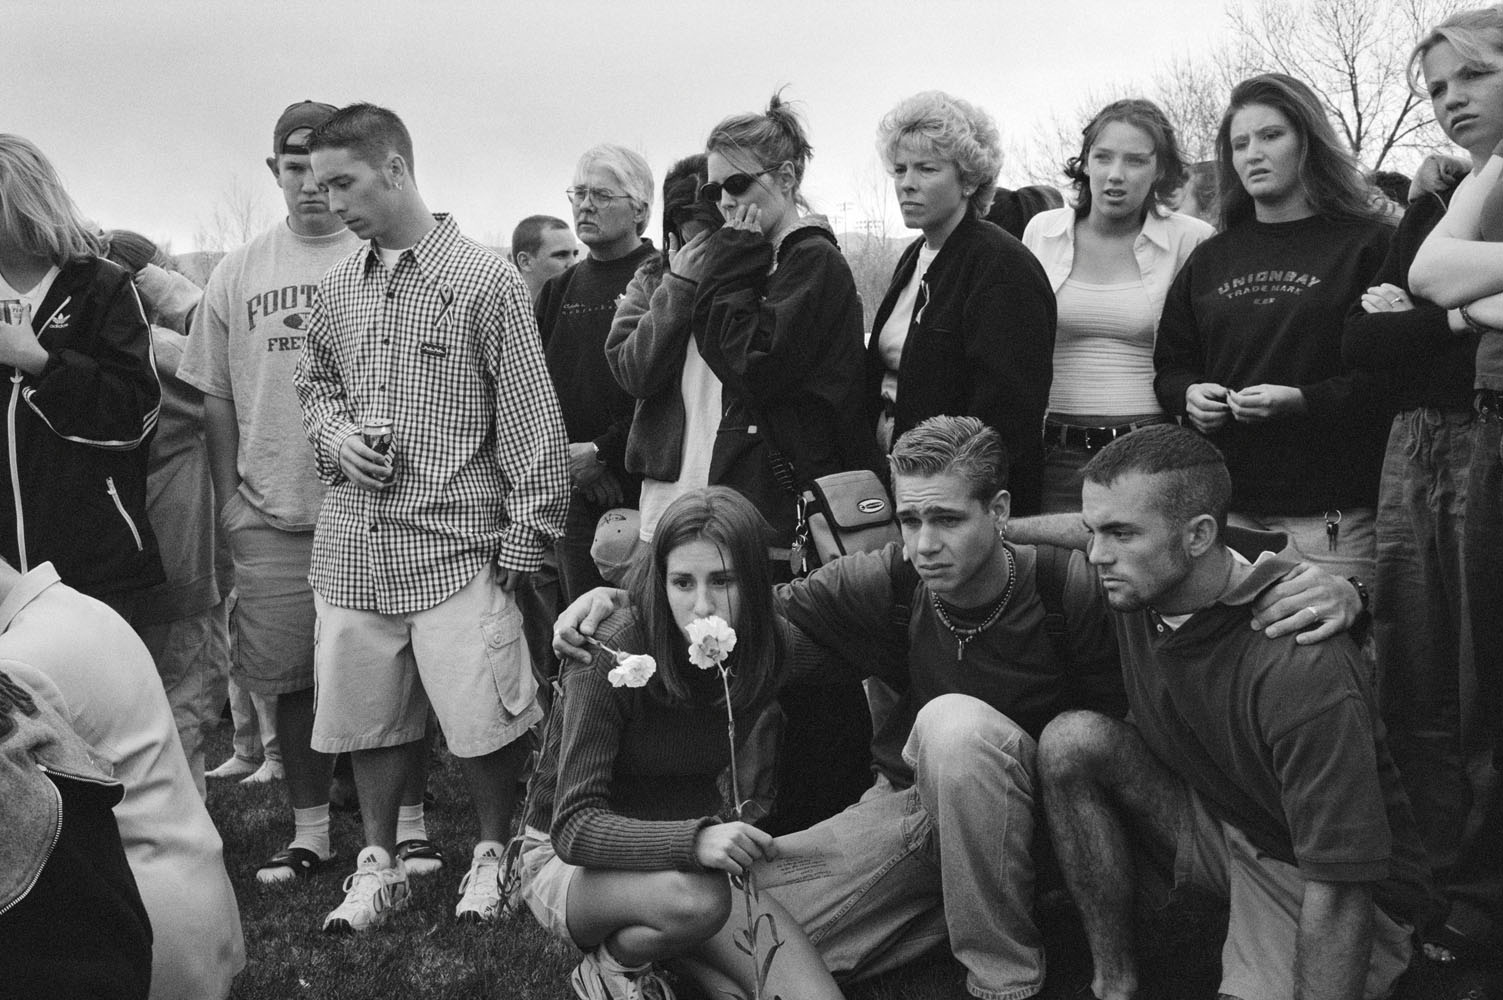 The day after the massacre, Columbine High School students gather outside their school to pray and place flowers on the ground. Many just wander among the tributes crying, trying to make sense of what has happened.